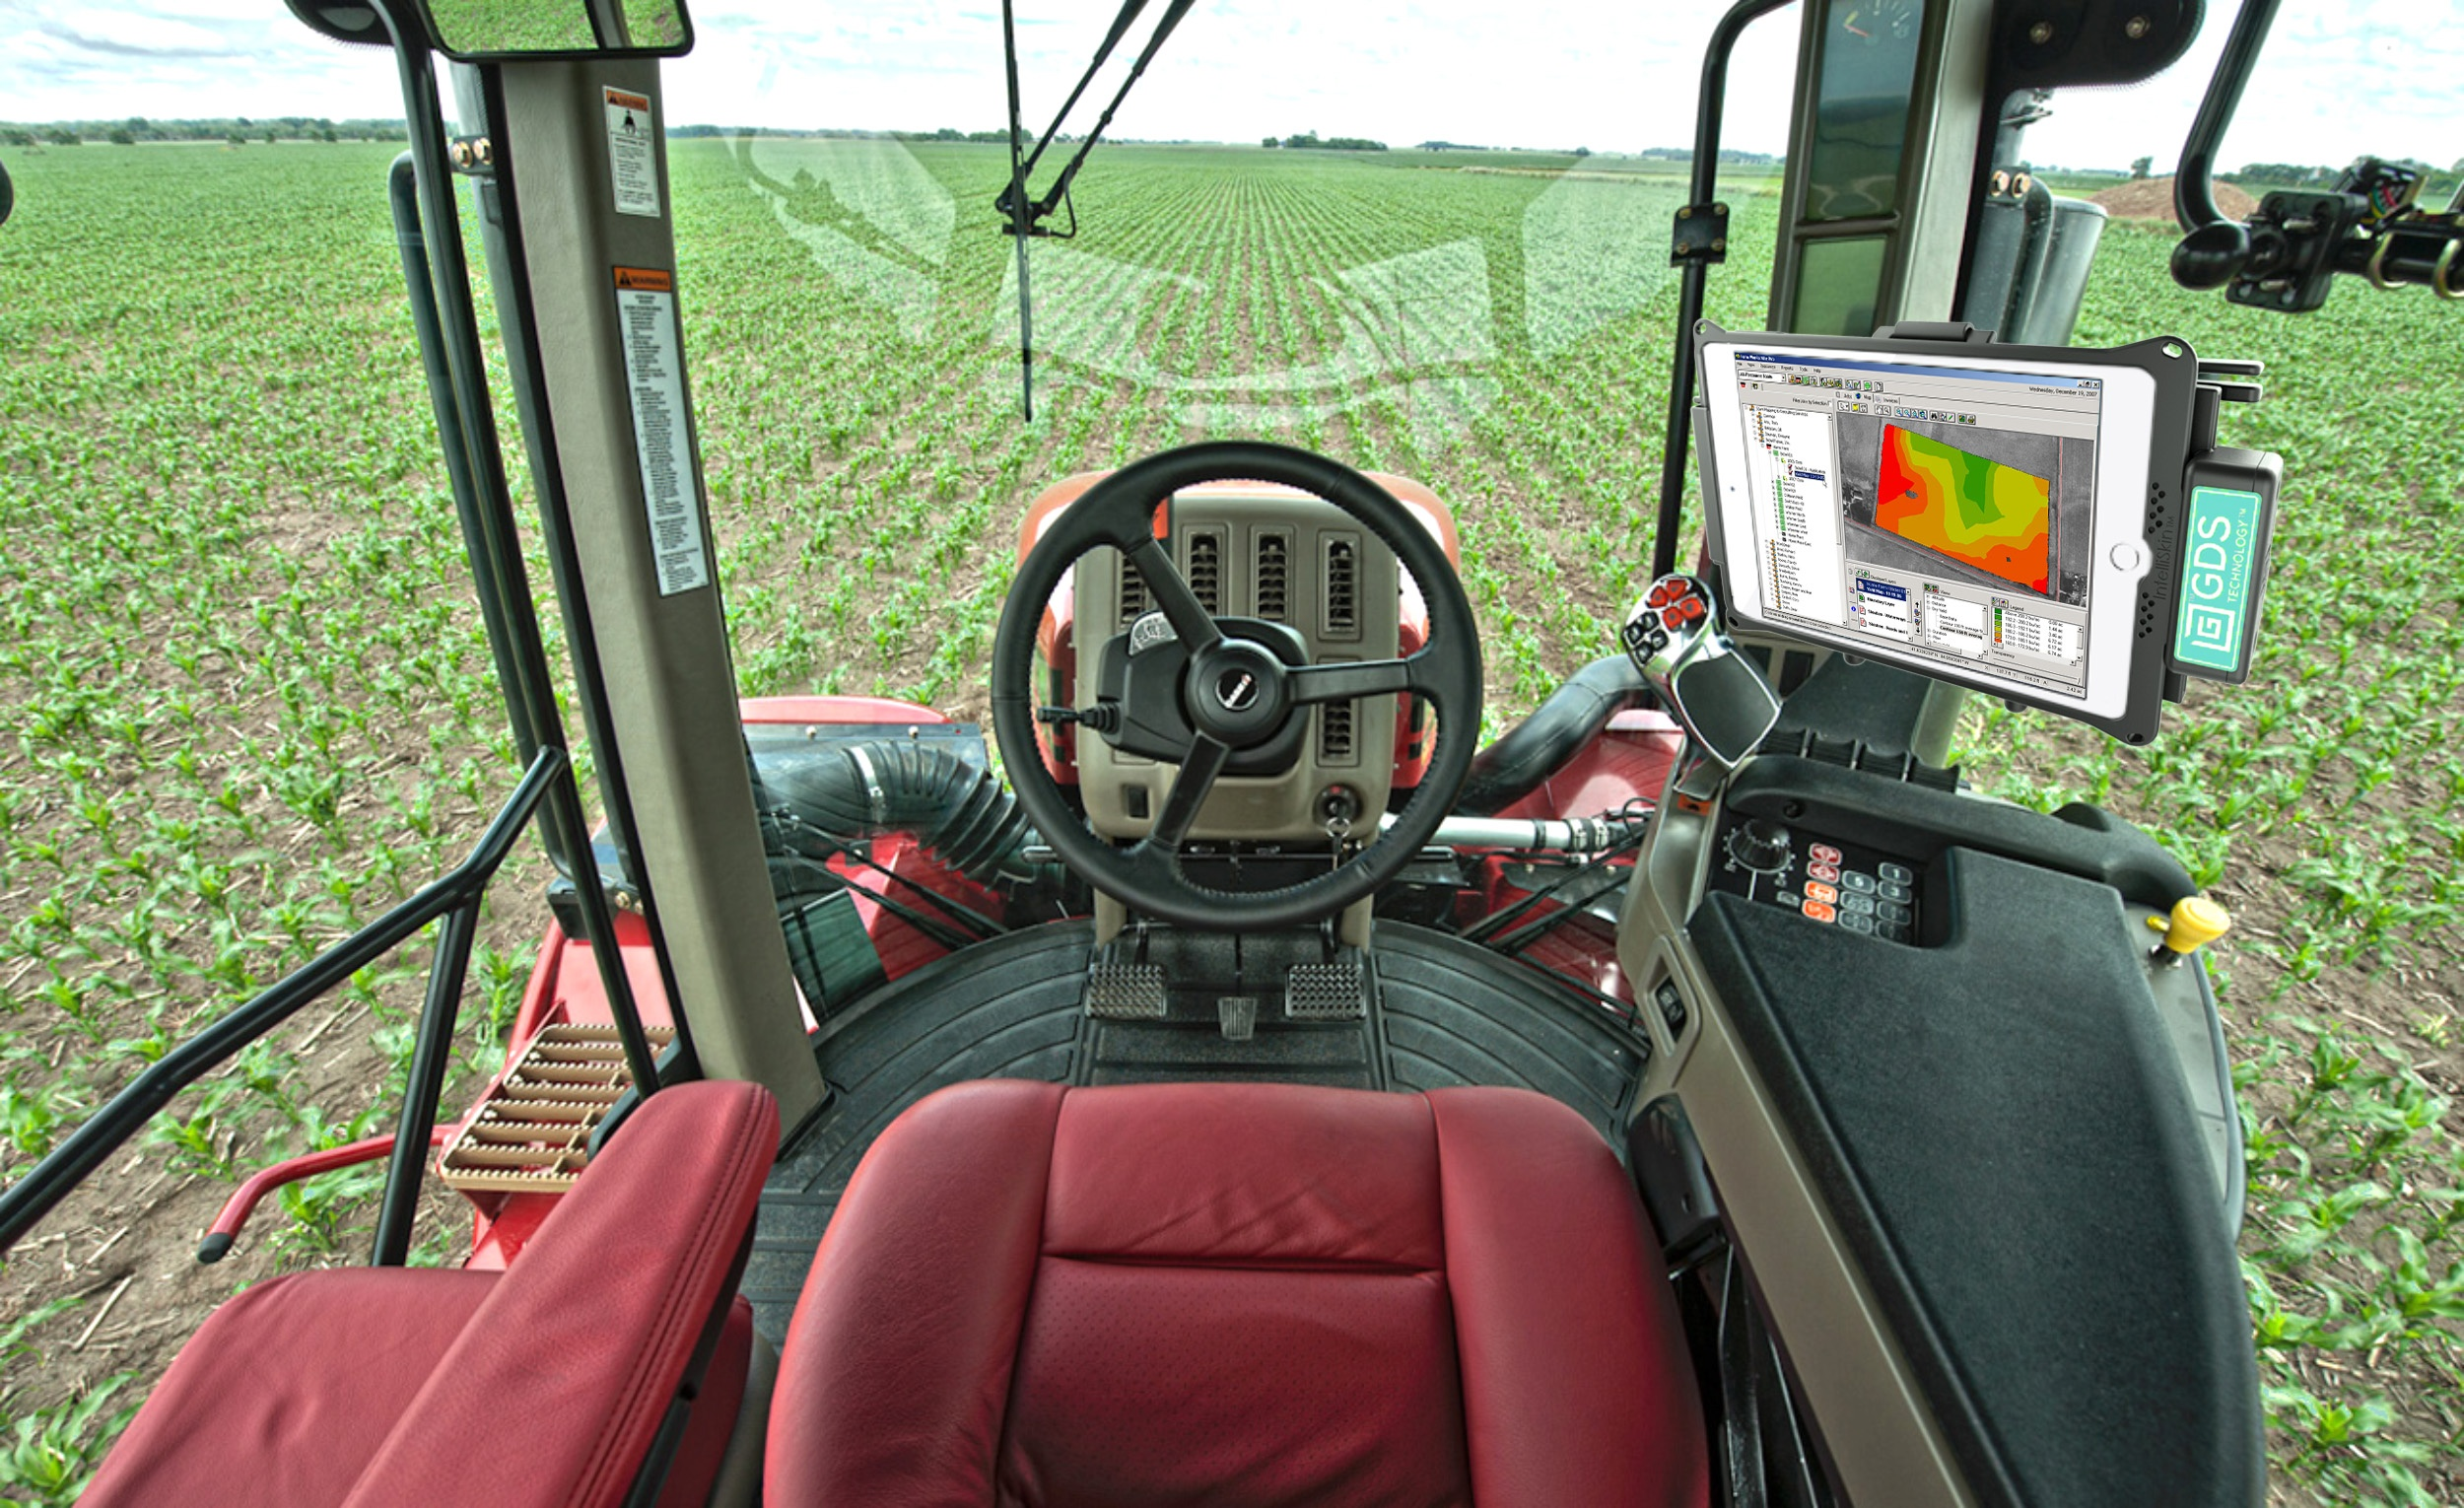 Using Precision Farming to Feed the World